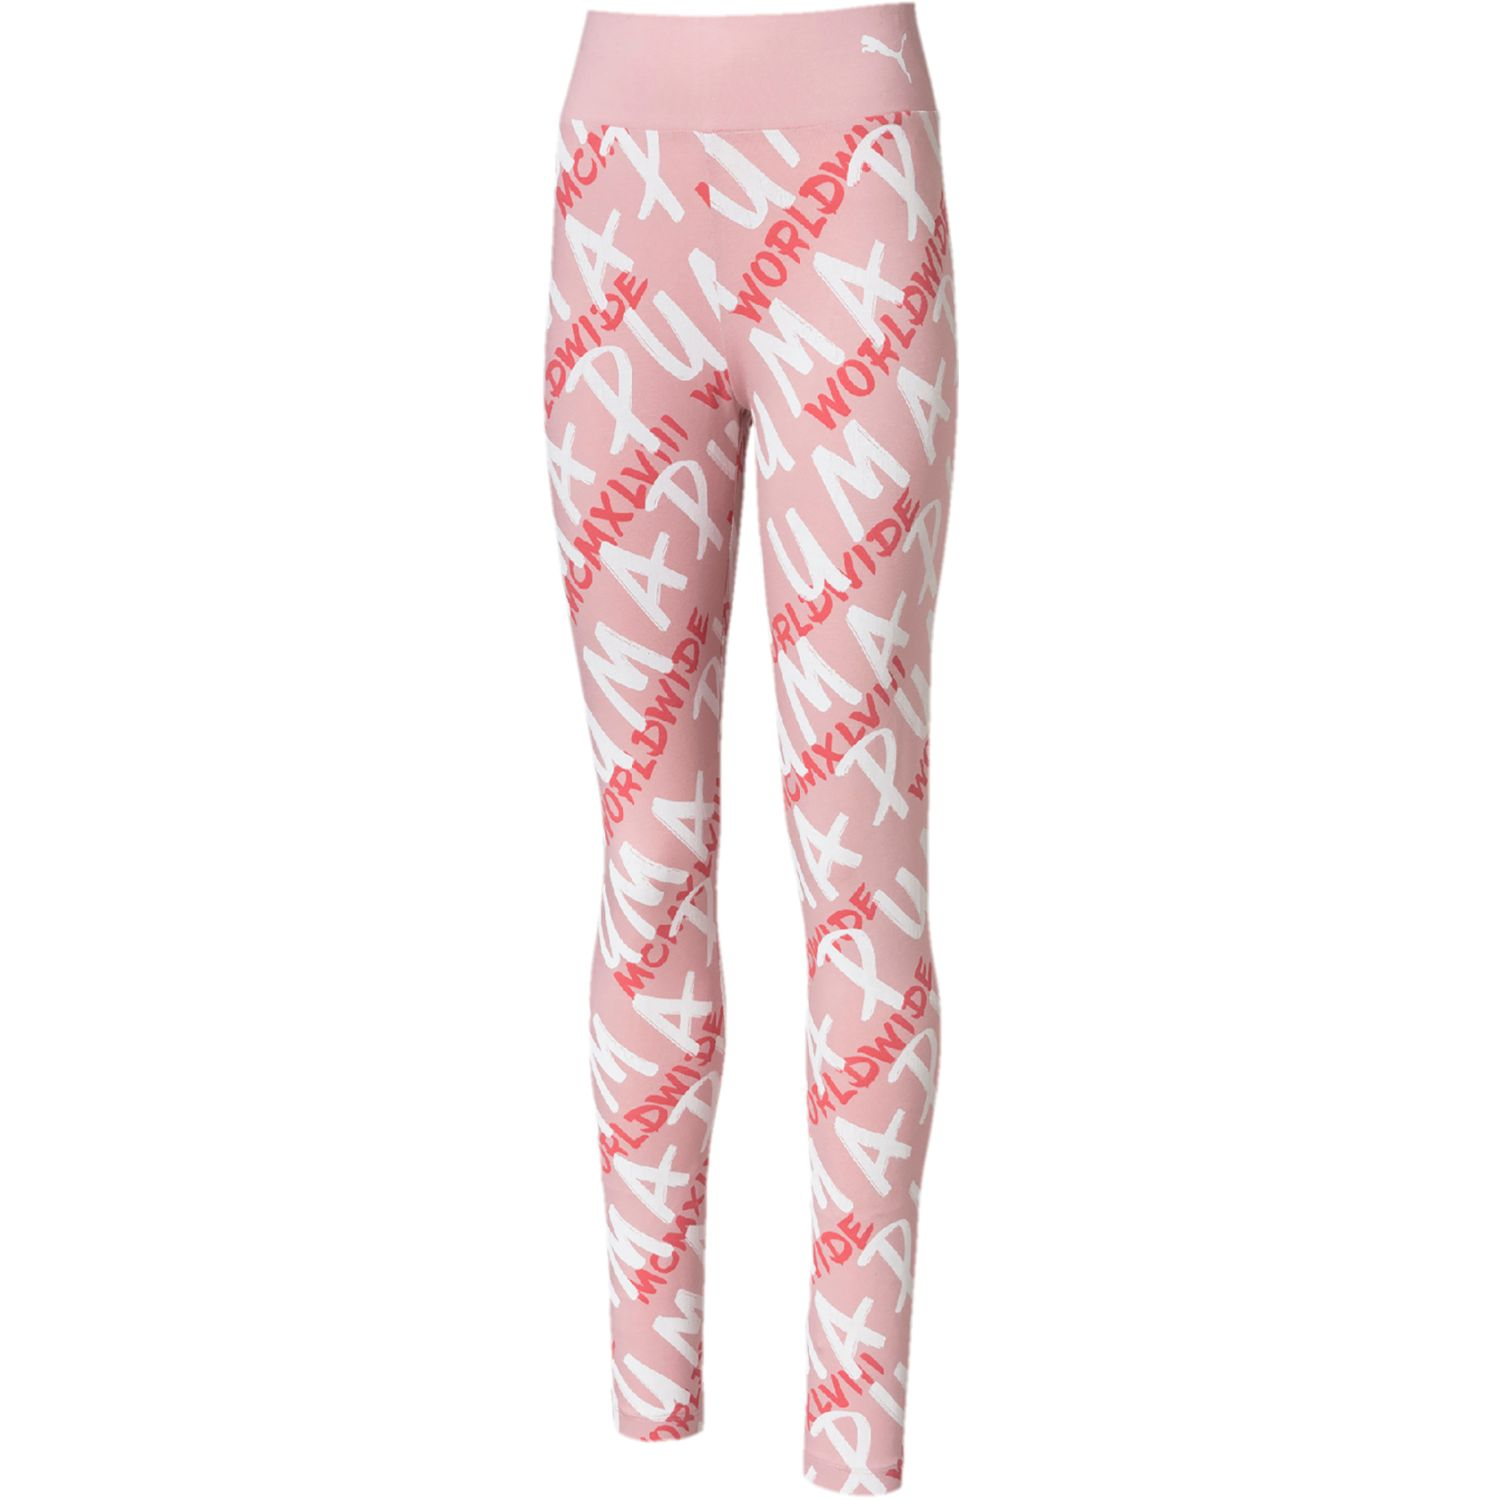 Puma alpha aop leggings g Rosado Leggings Deportivos